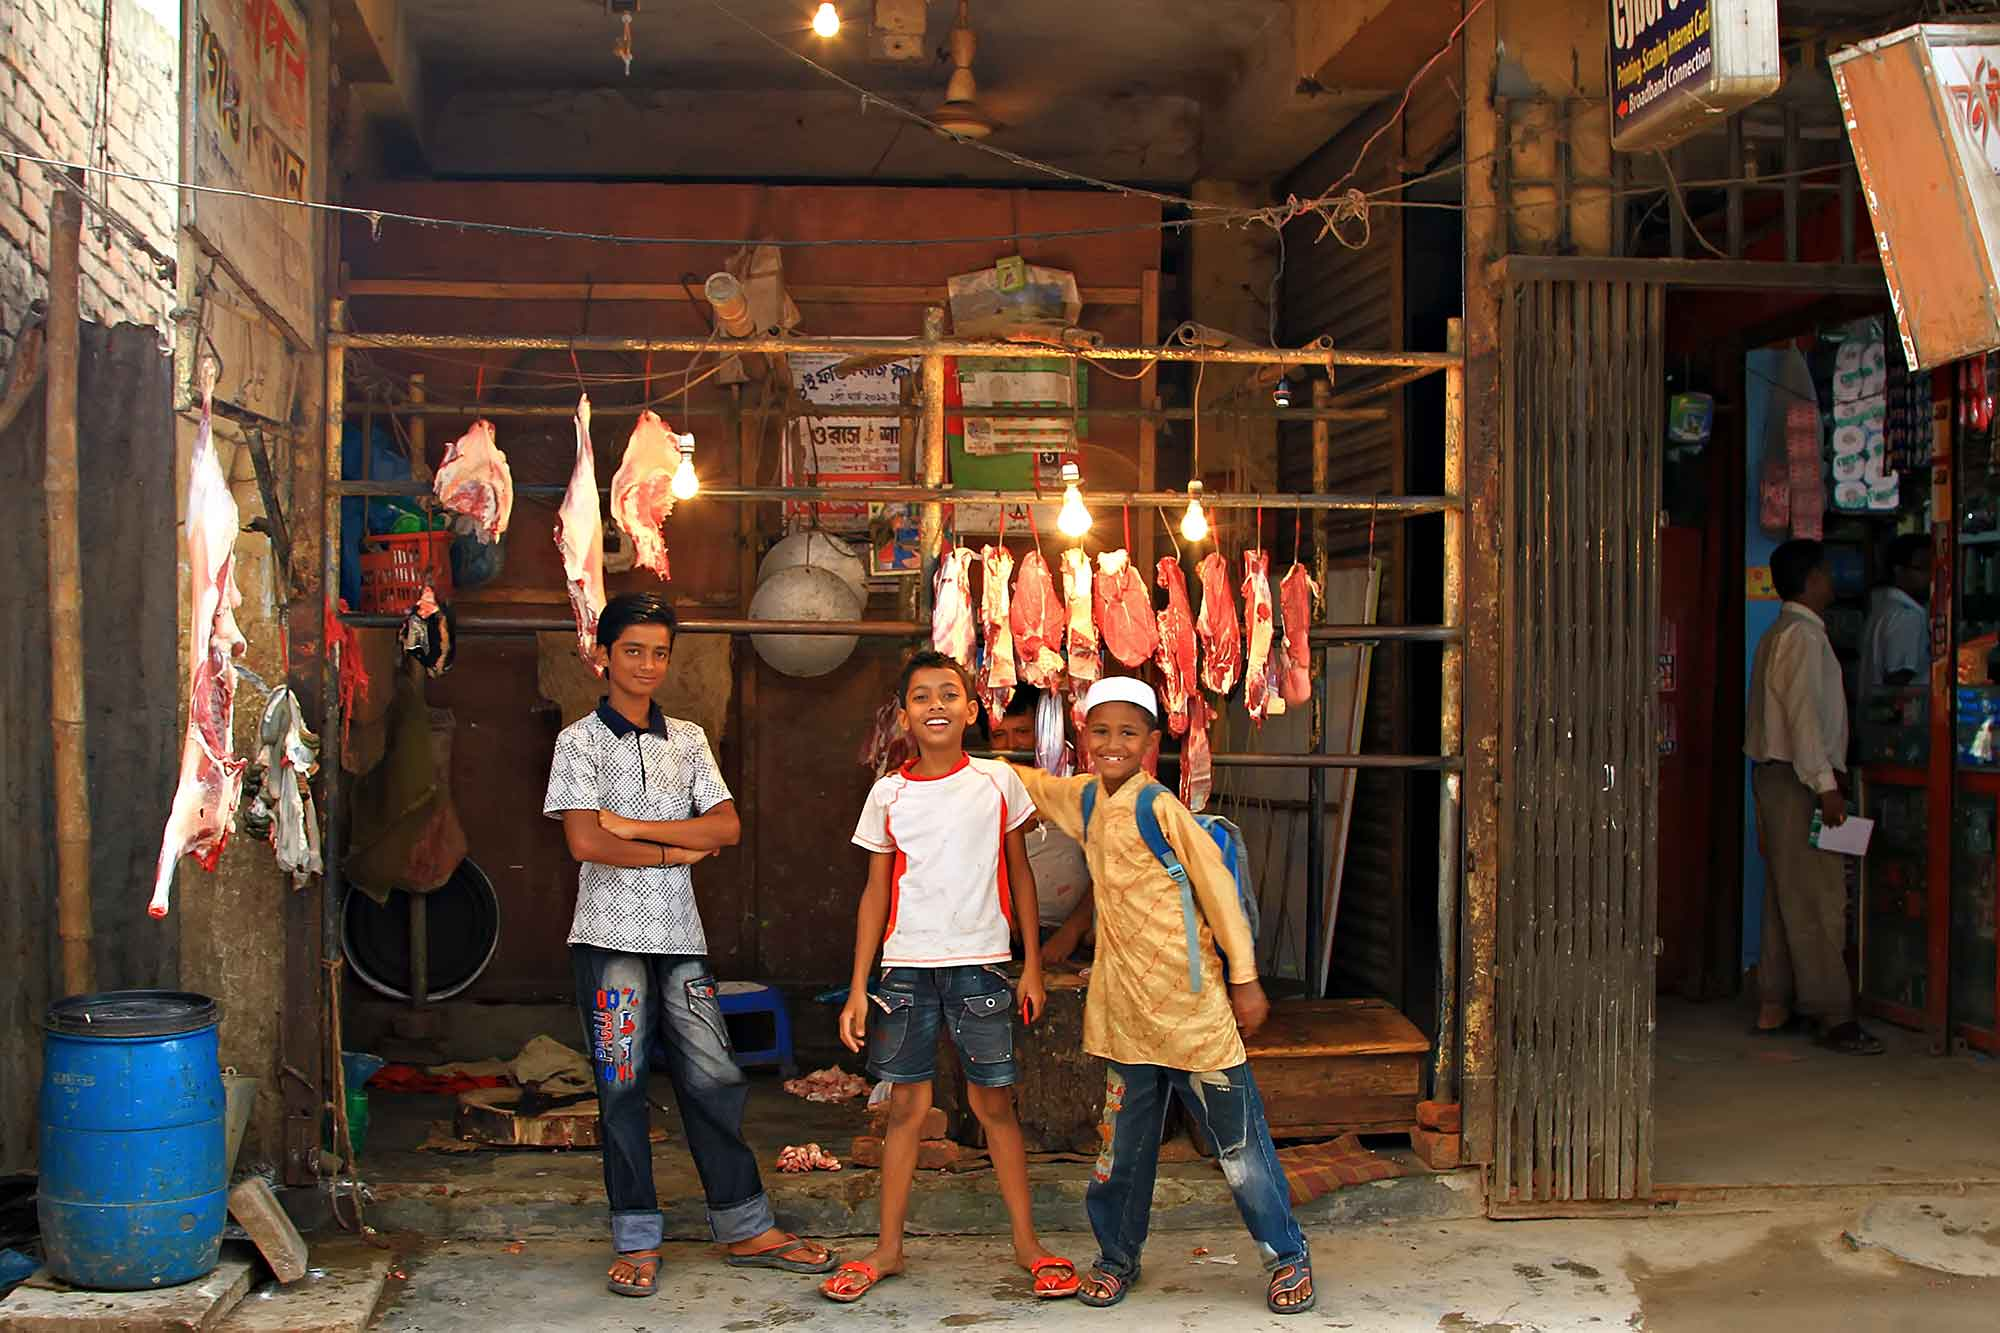 Meat shop in Old Dhaka, Bangladesh. © Ulli Maier & Nisa Maier